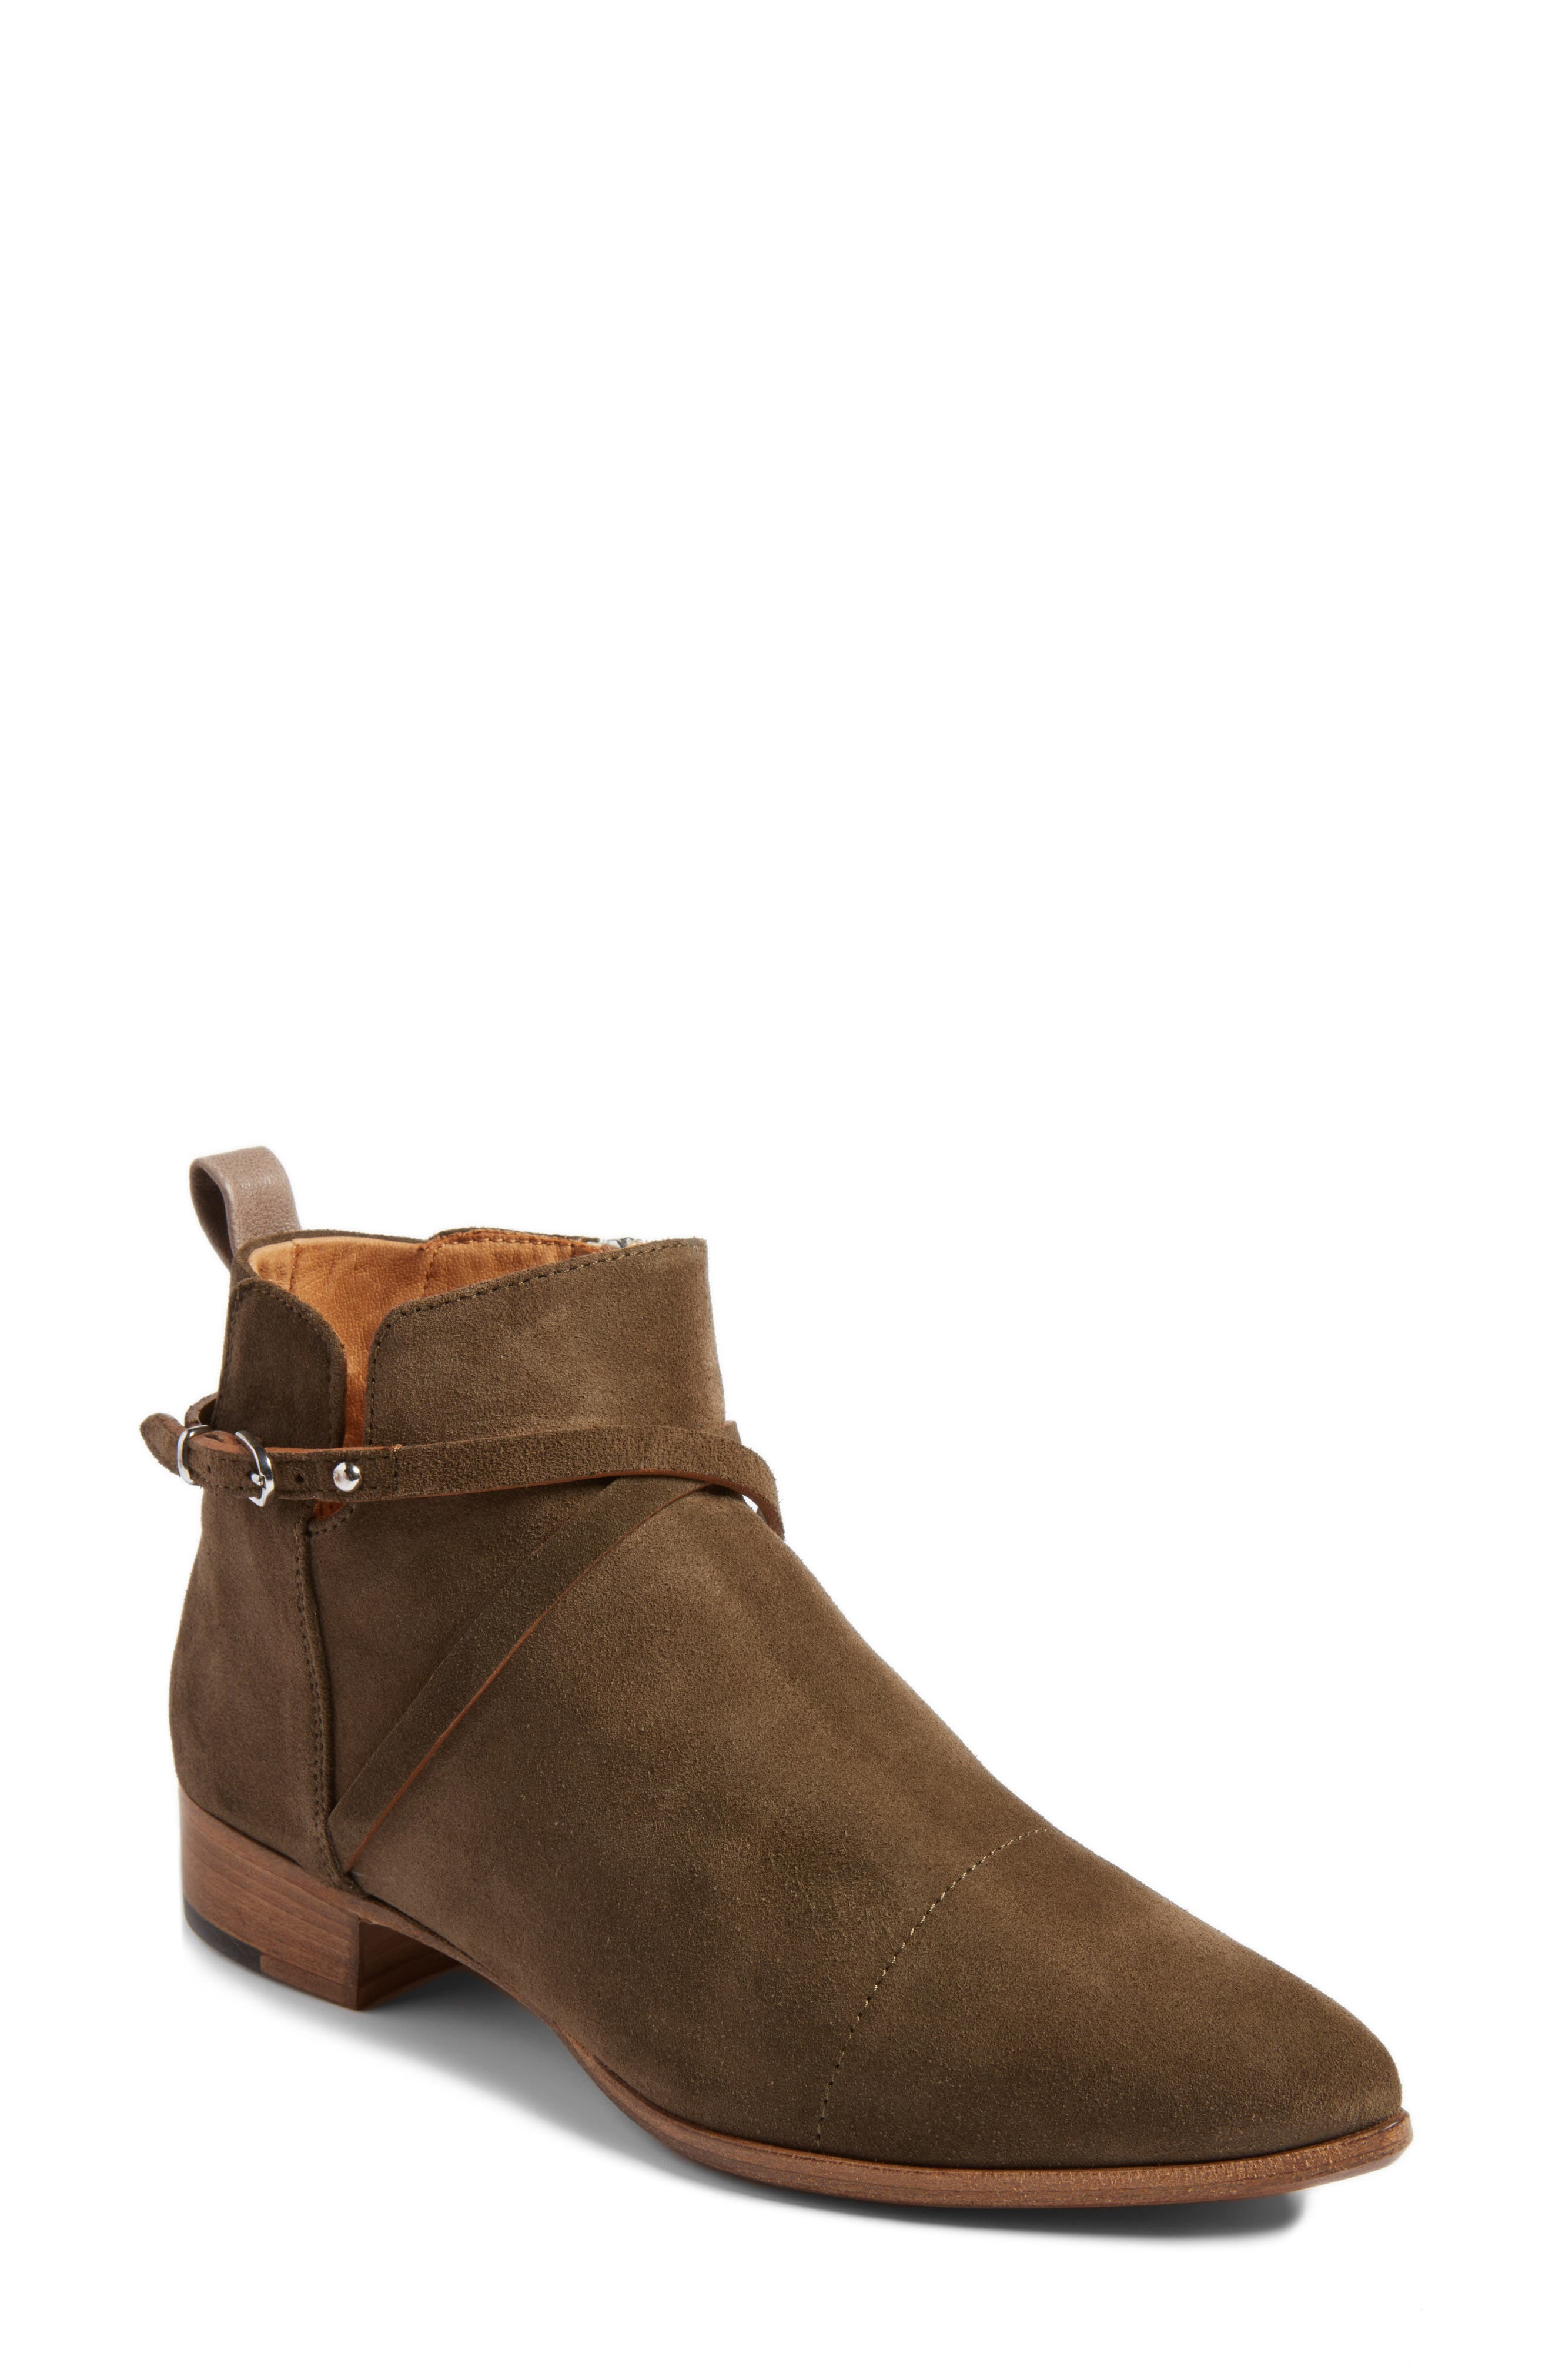 'Mea' Ankle Boot,                             Main thumbnail 3, color,